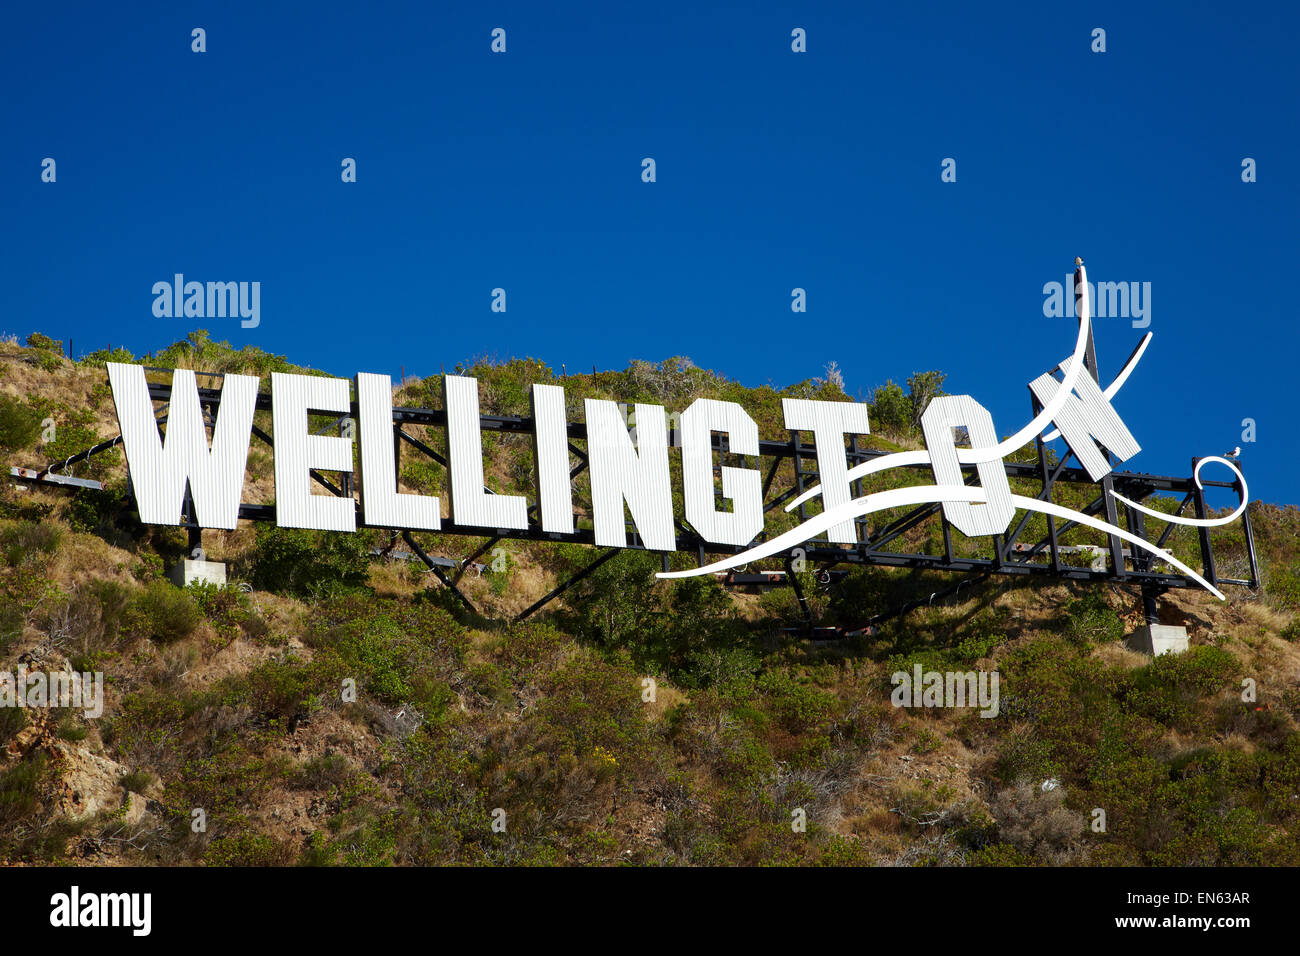 Windy Wellington sign, Lyall Bay, beside Wellington International Airport, Wellington, North Island, New Zealand - Stock Image